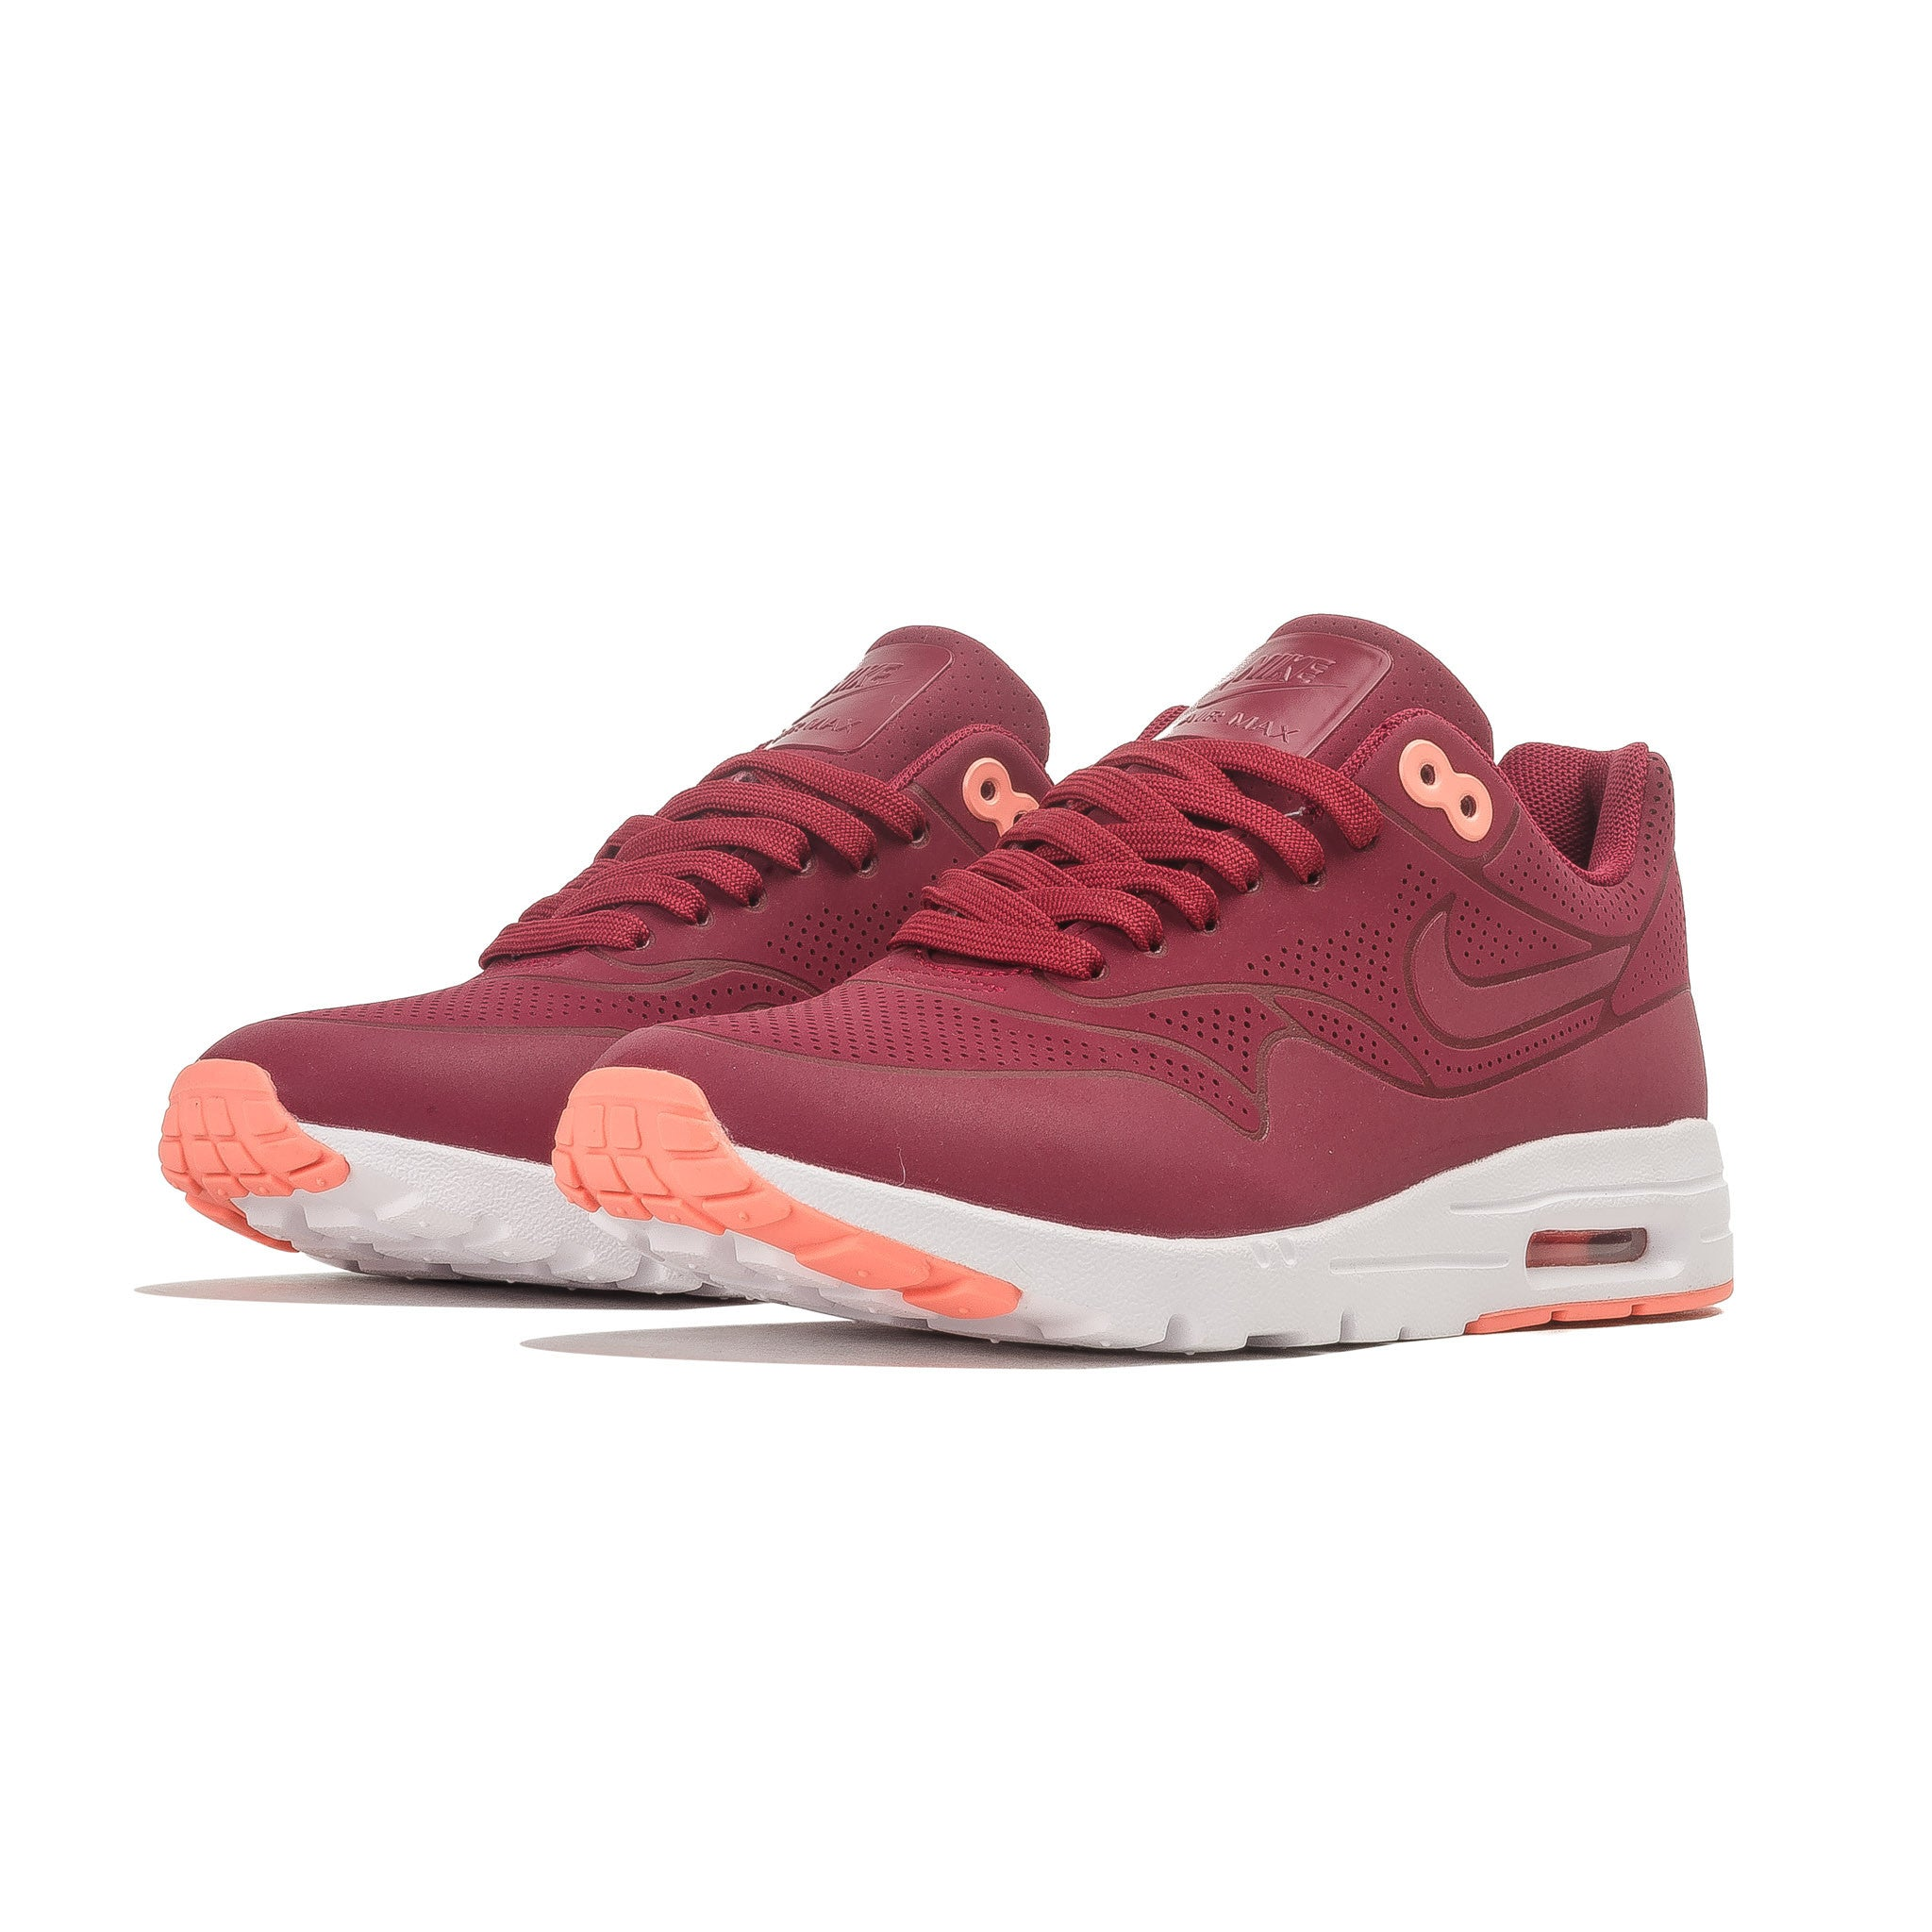 WMNS Air Max 1 Ultra Morie 704995-602